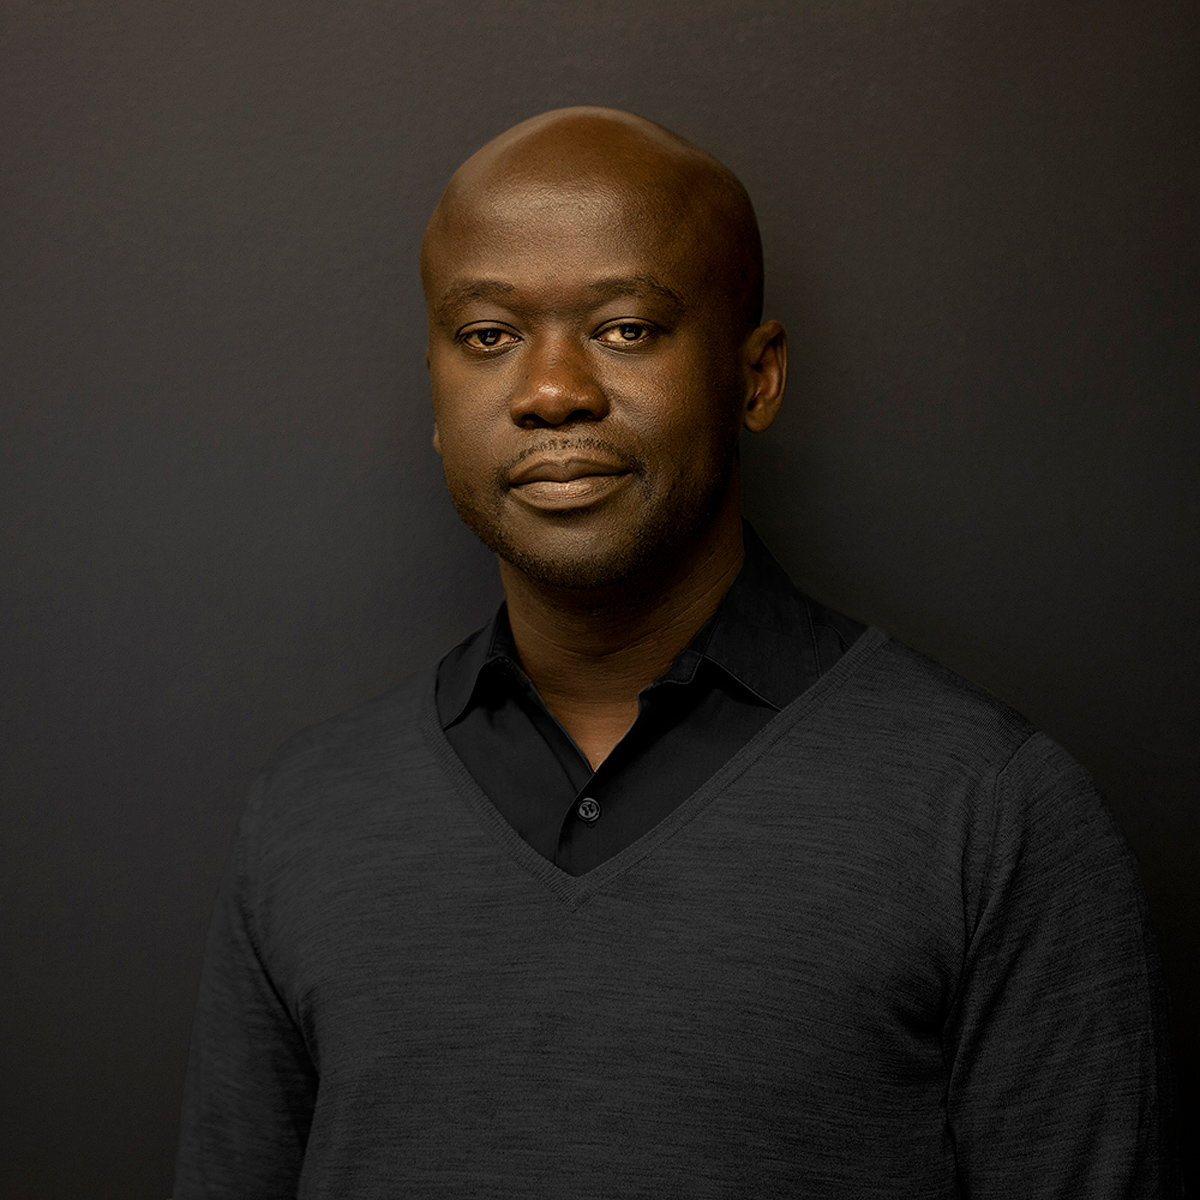 Center for Architecture and Design to Honor Sir David Adjaye